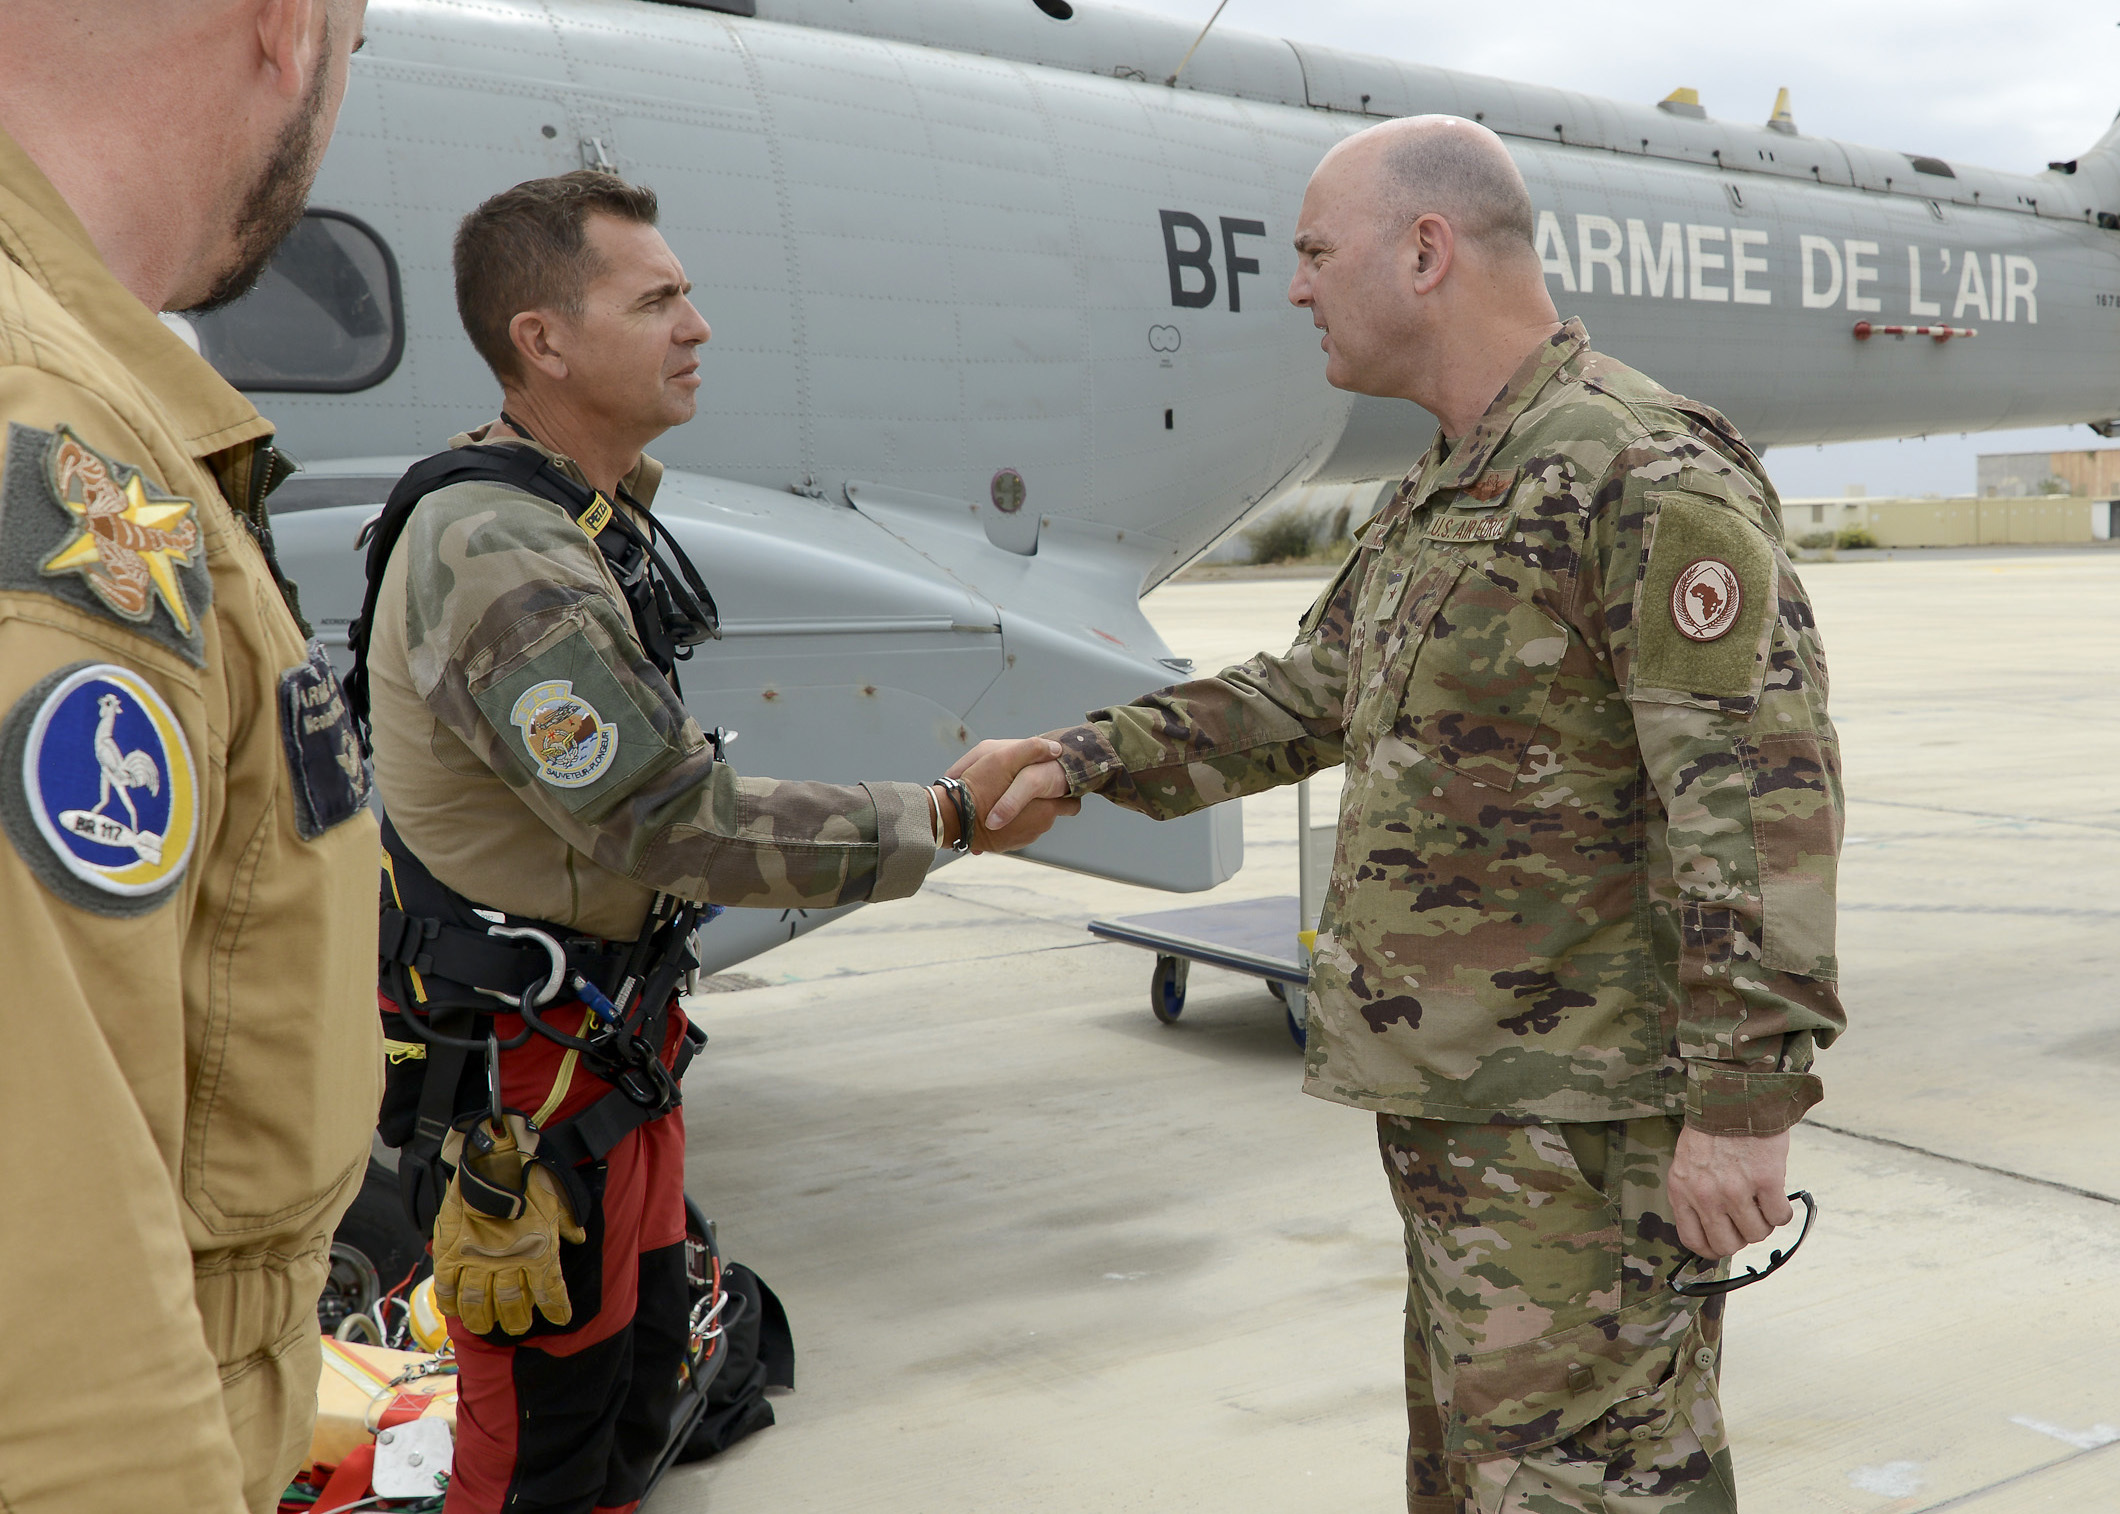 French air force Chief Master Sgt. Franck (left), rescue team NCO, greets U.S. Air Force Brig. Gen. James R. Kriesel, deputy commanding general of Combined Joint Task Force-Horn of Africa (CJTF-HOA), during his visit to French Air Force Base 188, Djibouti, Feb. 19, 2019. Kriesel visited the French base to gain insight into their assets and capabilities as a U.S. ally in CJTF-HOA's combined joint operations area. (Courtesy Photo)